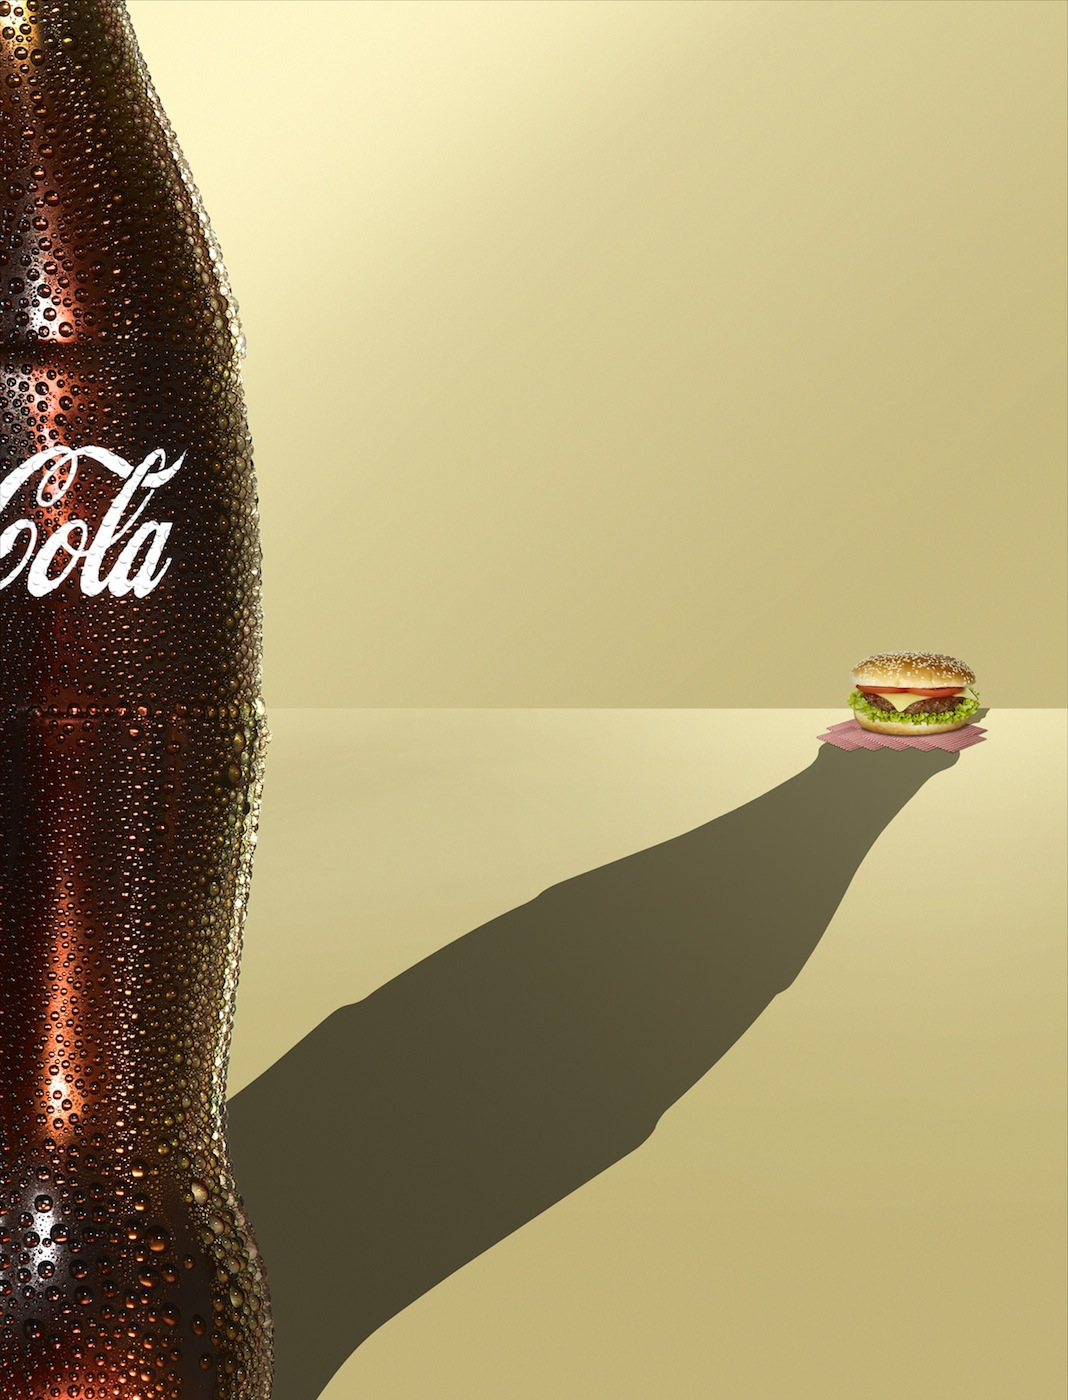 CokeBottleBurger